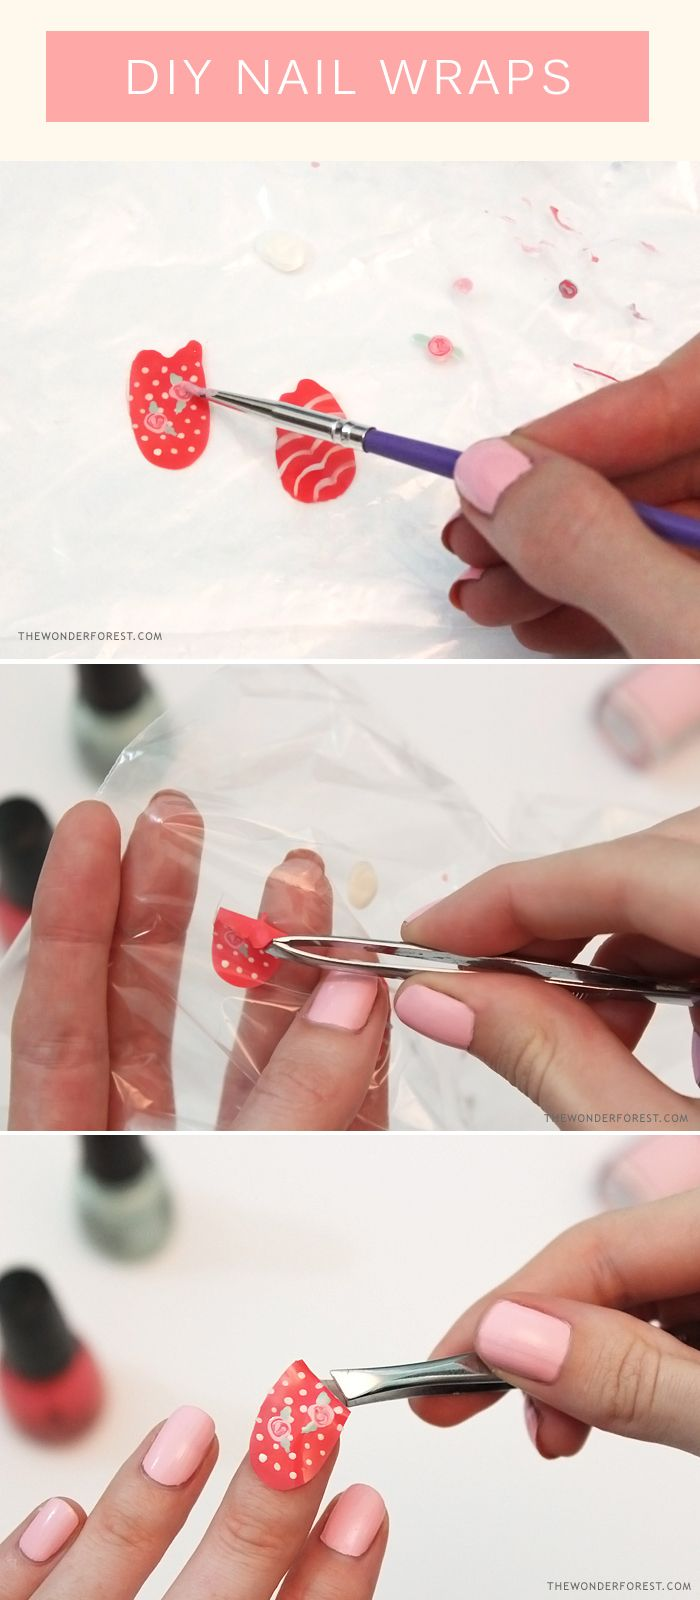 Make your own nail wraps with nail polish! No more wonky wrong-handed nail art ;):